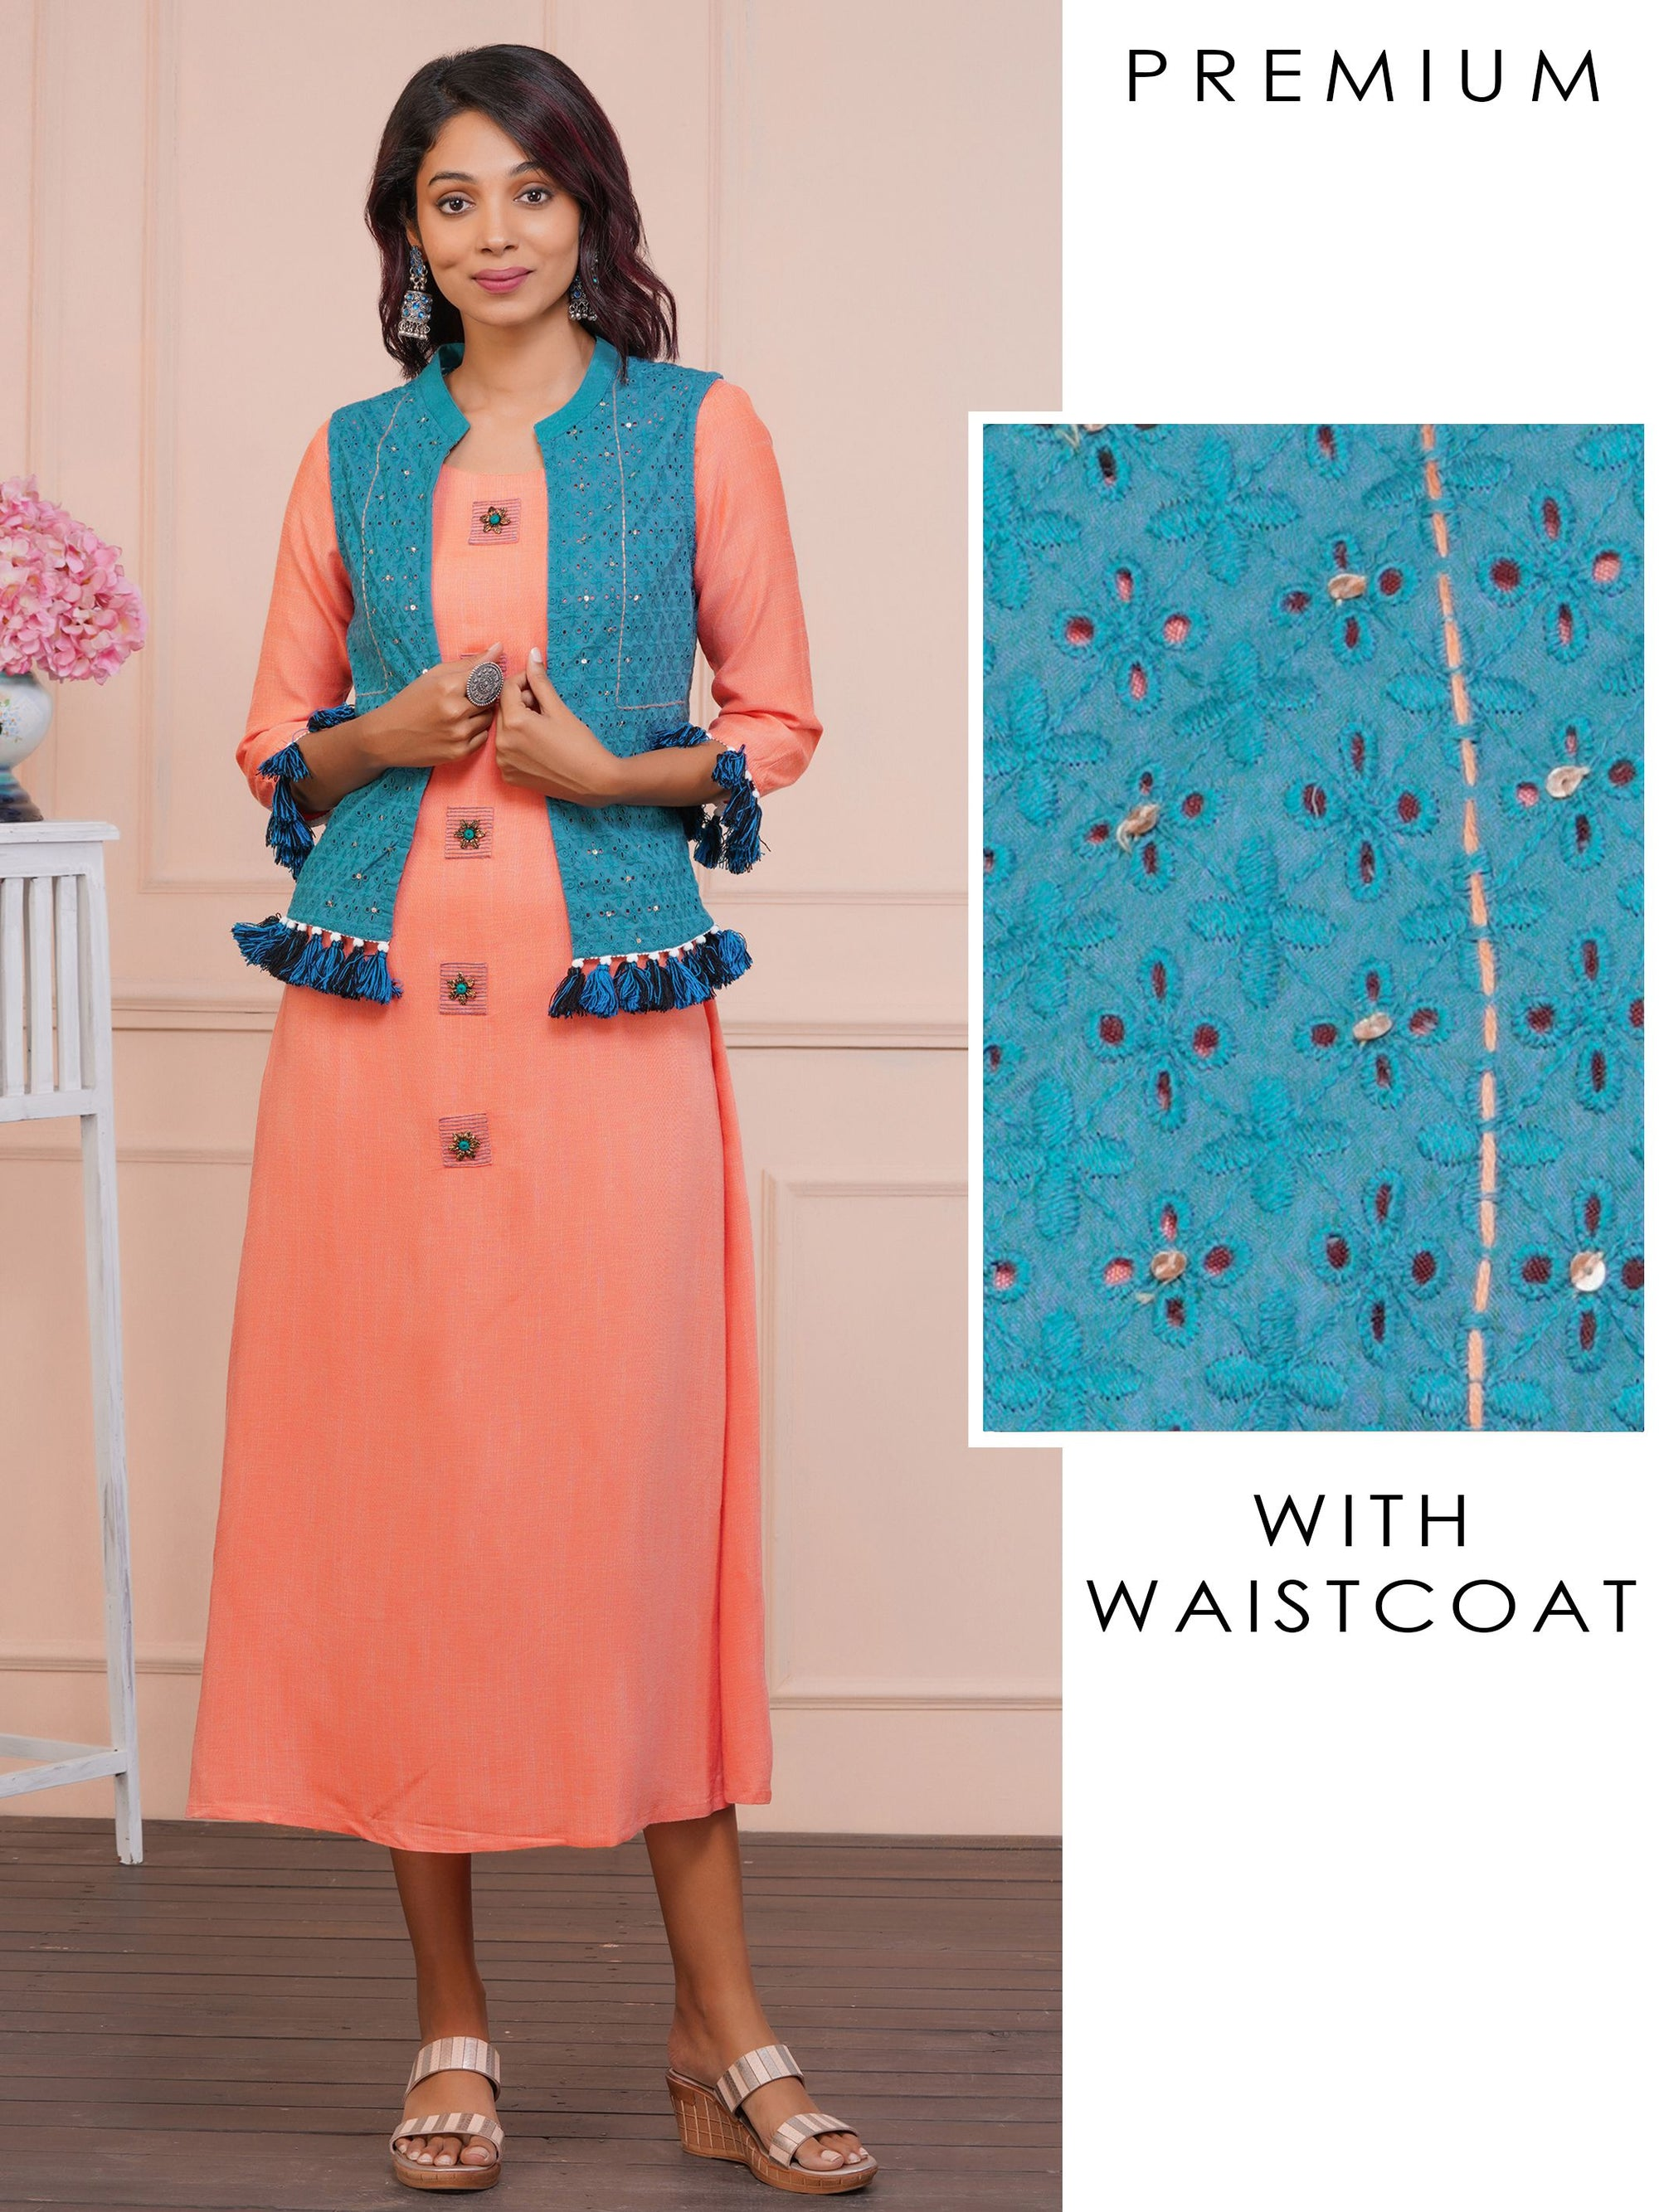 Handloom Print Peach Maxi And Hakoba Work Blue Waistcoat With Tassels